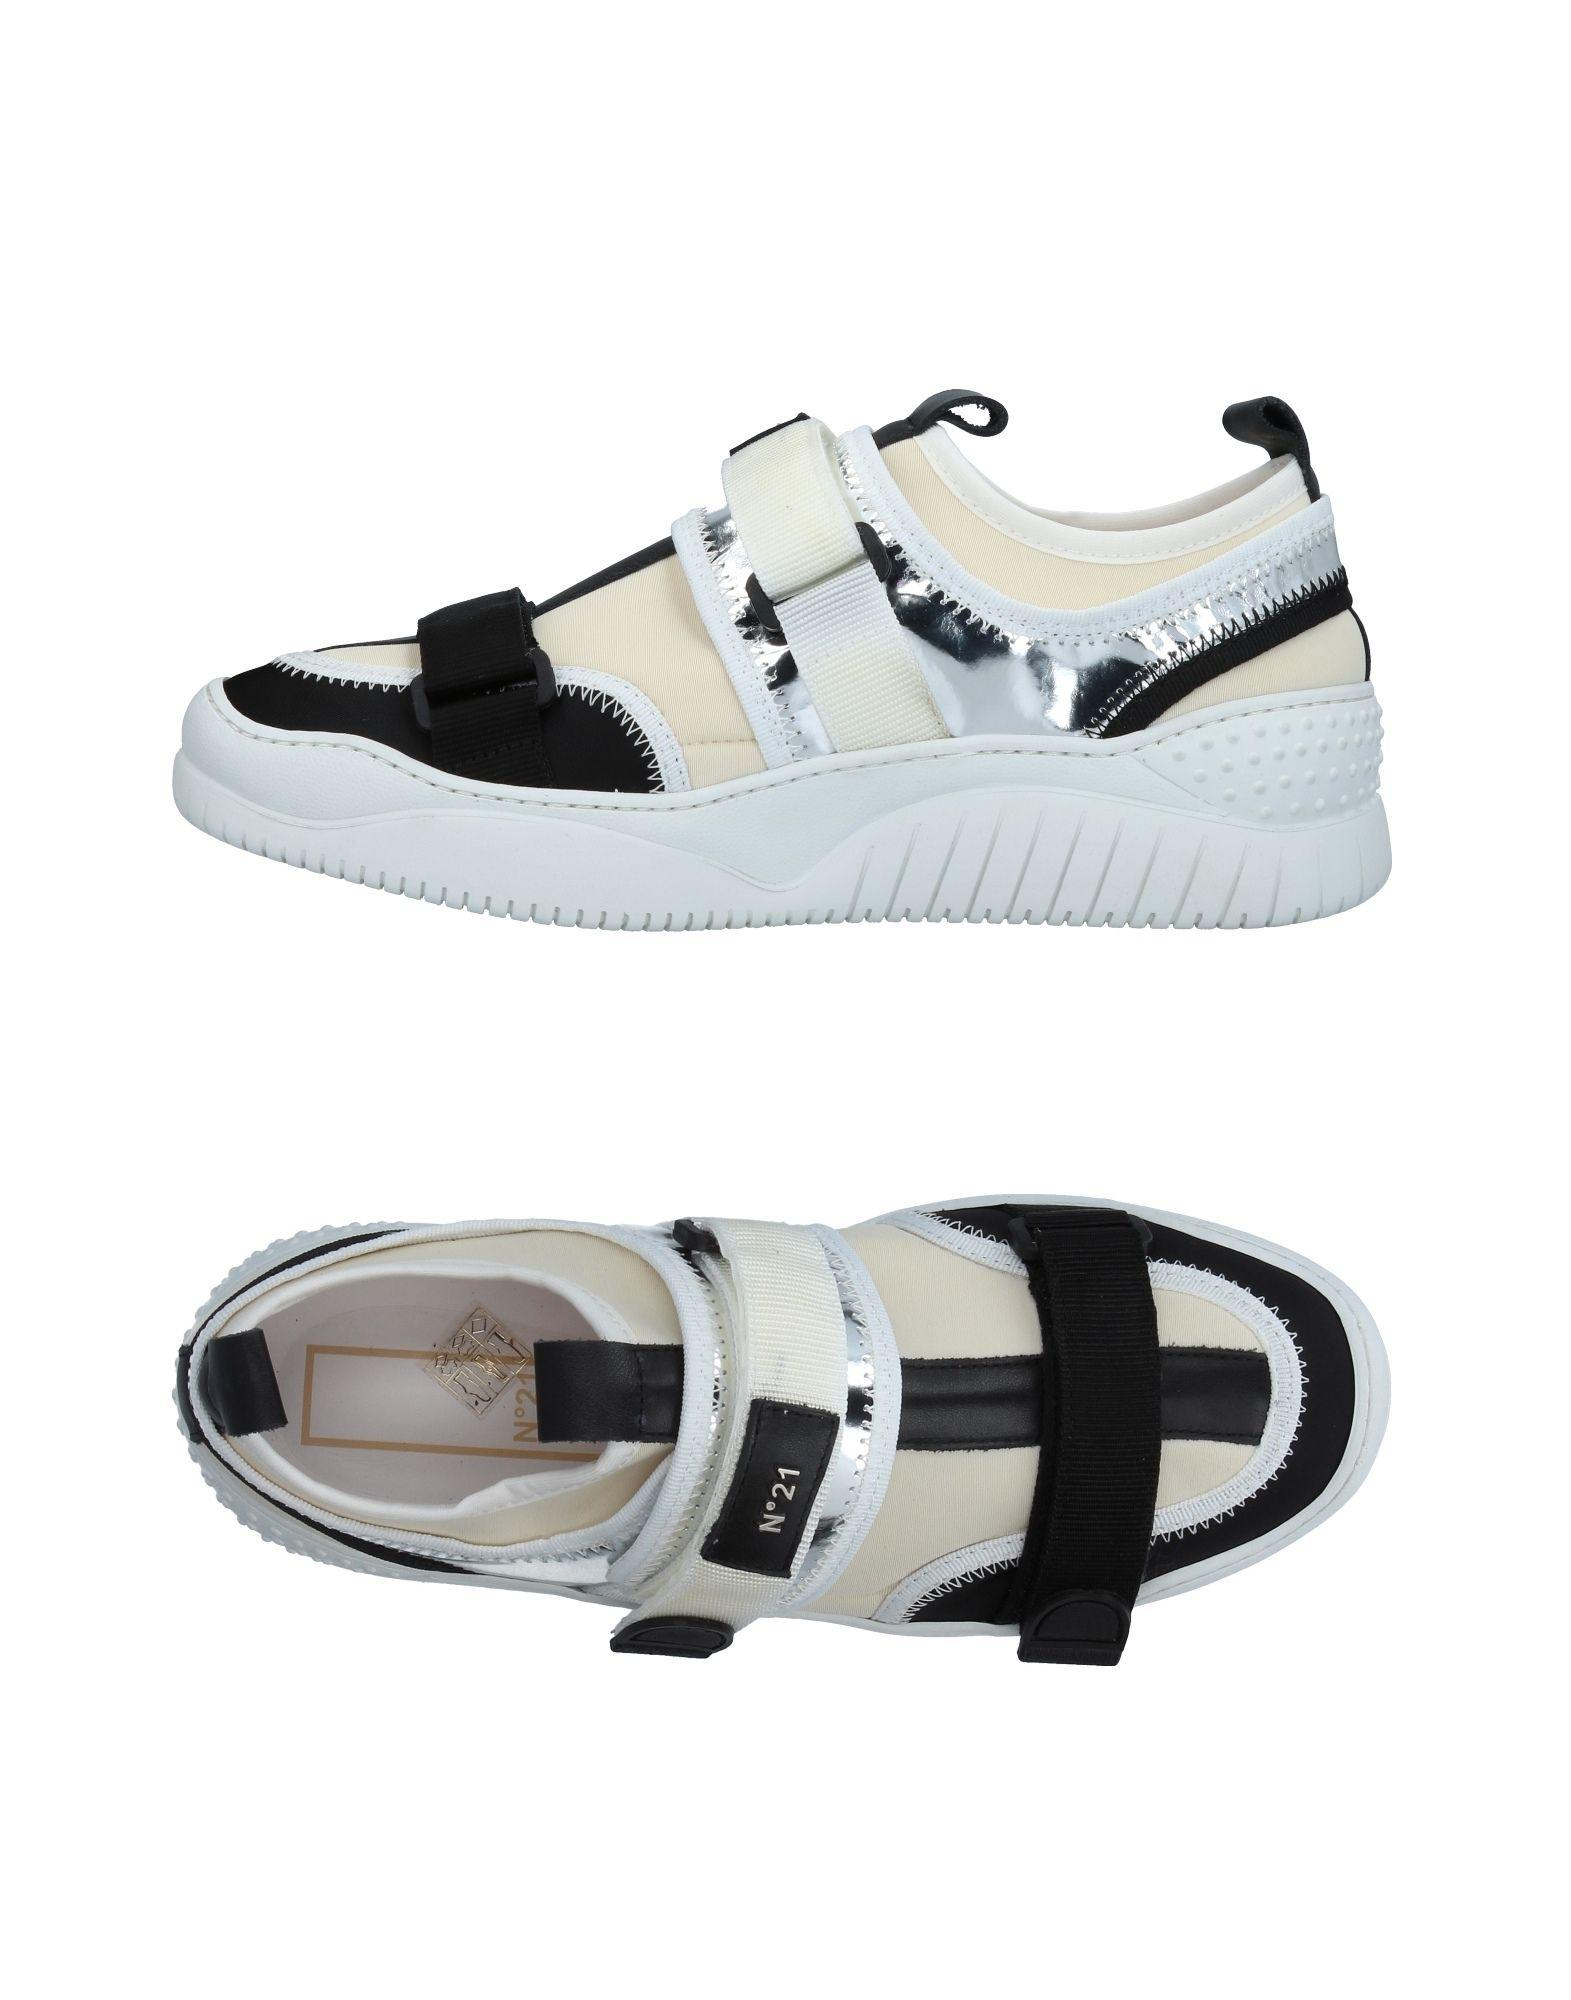 Chaussures - Bas-tops Et Baskets Policiers GH85ubmT